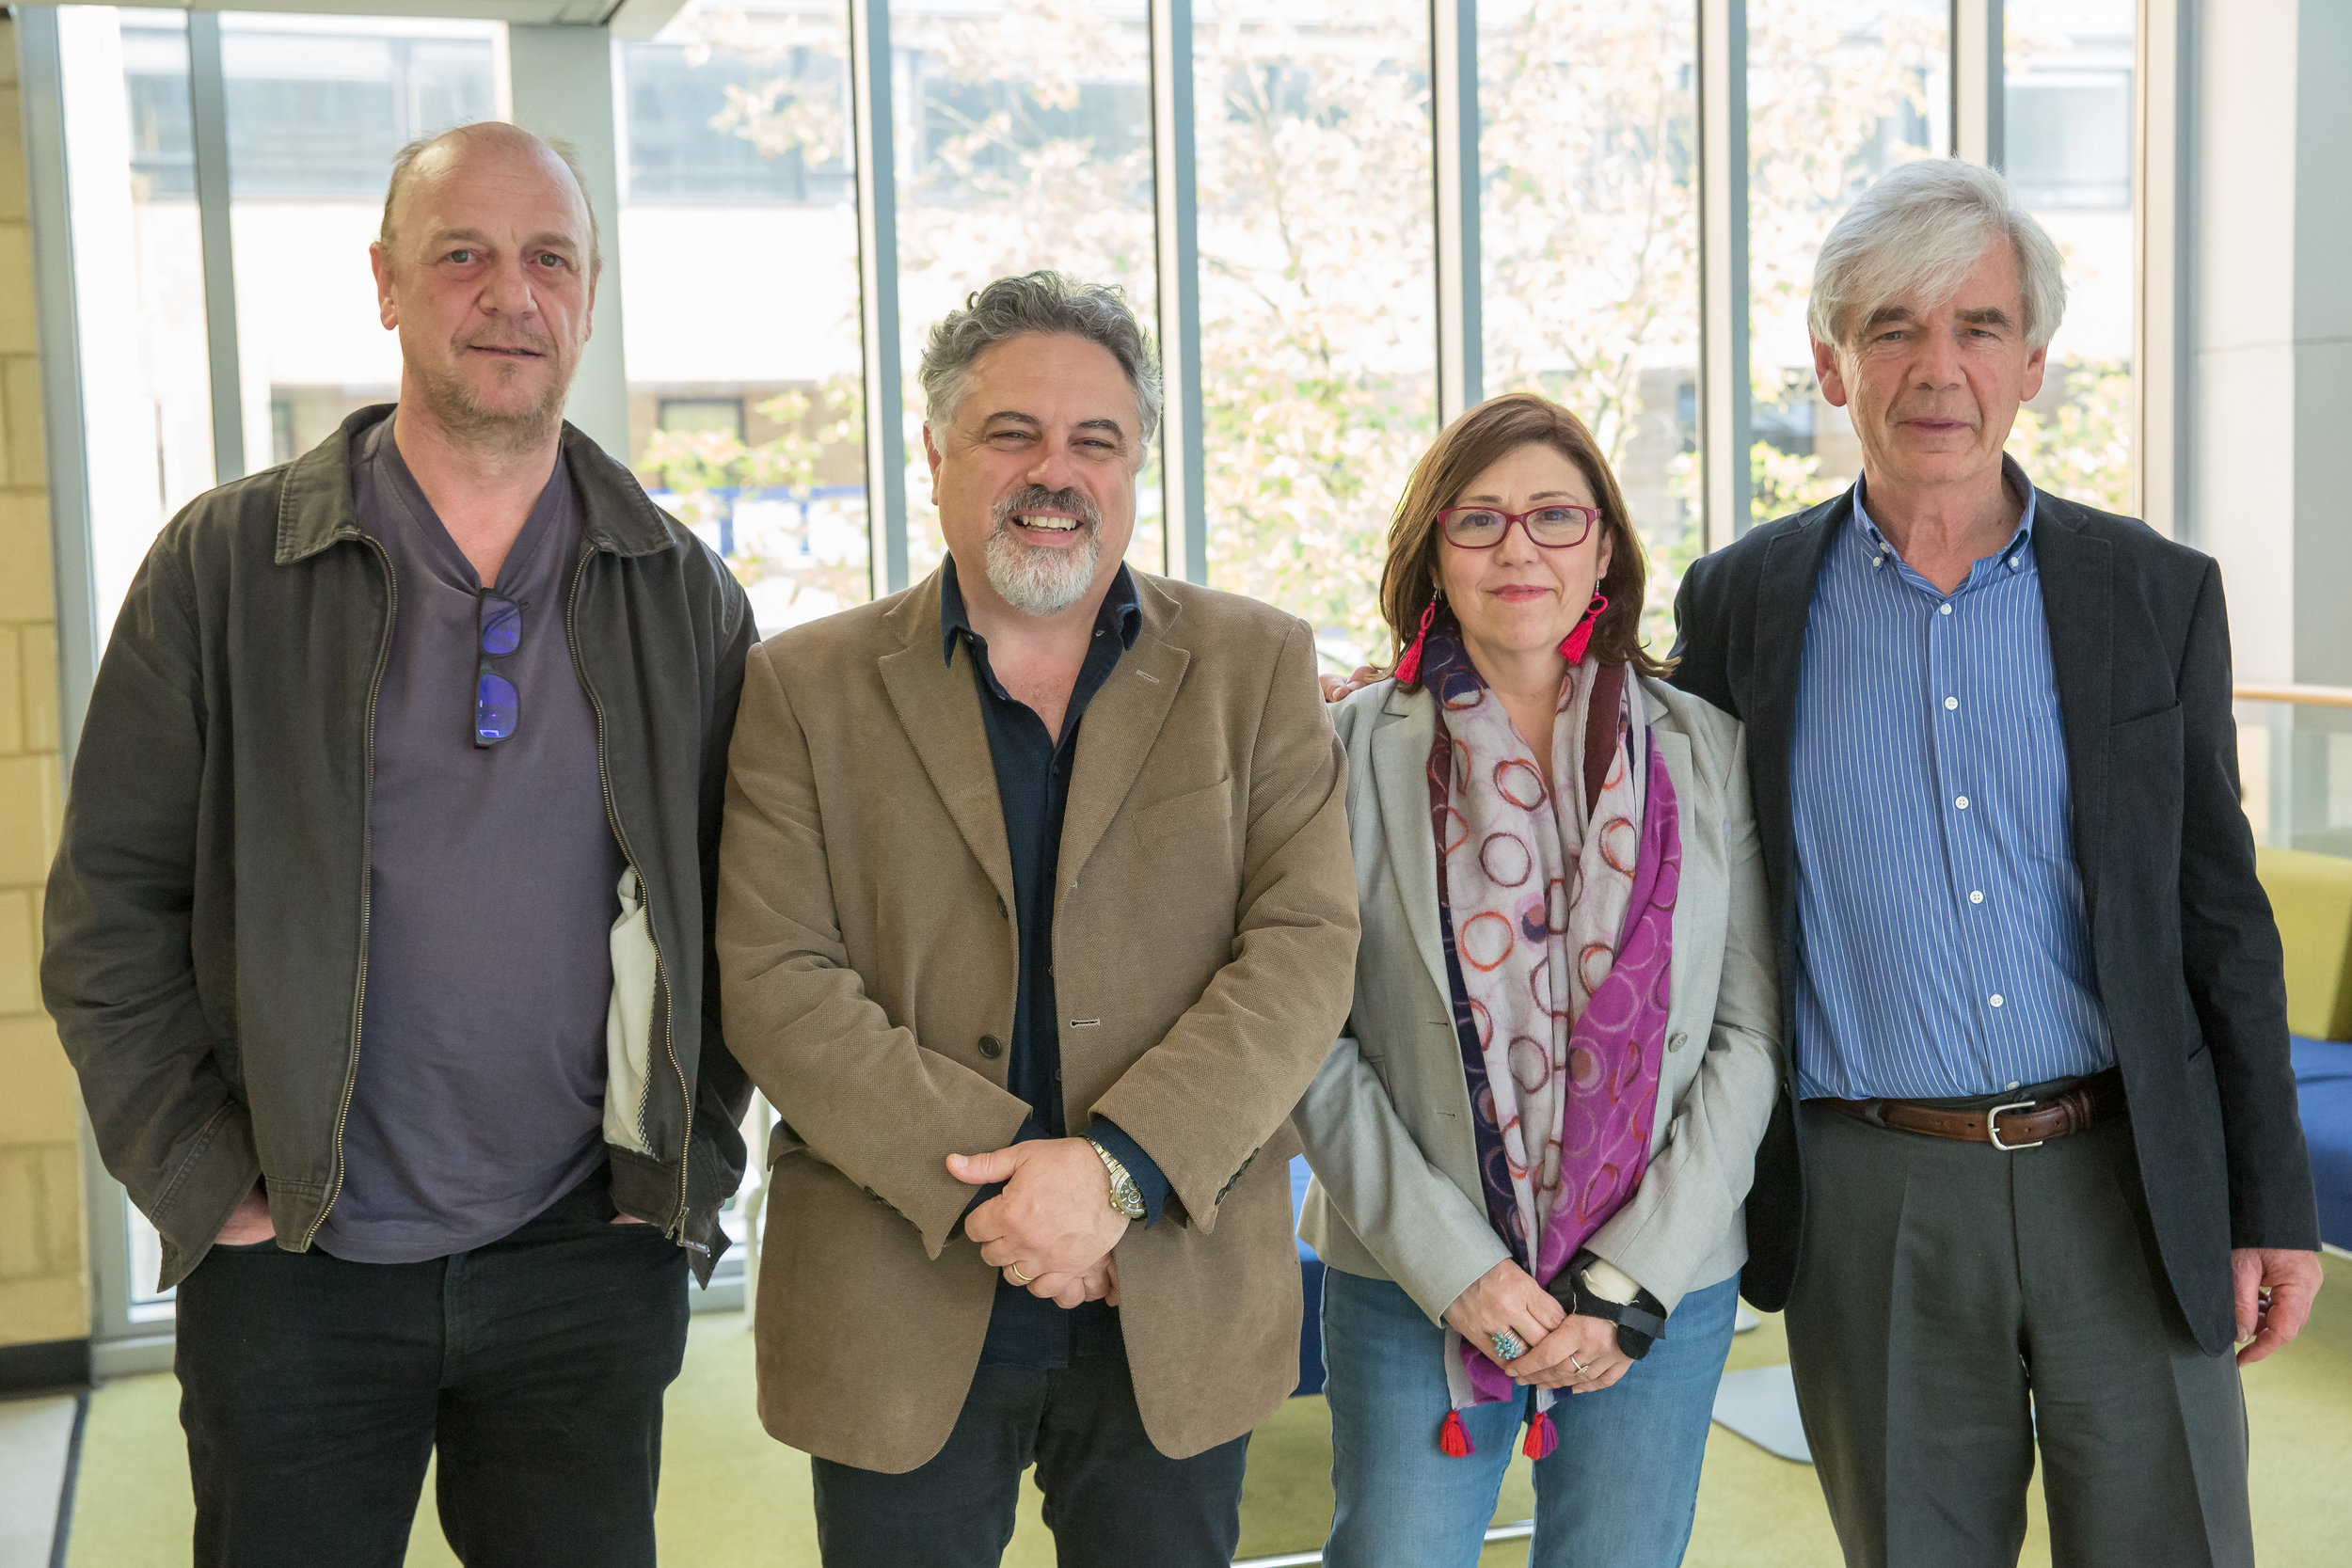 WERNER BONEFELD, THEO PAPADOPOULOS, ANA C DINERSTEIN & JOHN HOLLOWAY, UNIVERSITY OF BATH, 15TH OF MAY. INAUGURAL CONFERENCE ESRC SWDTP STANDING SEMINAR IN CRITICAL THEORY. Convenor: Ana C, Dinerstein.